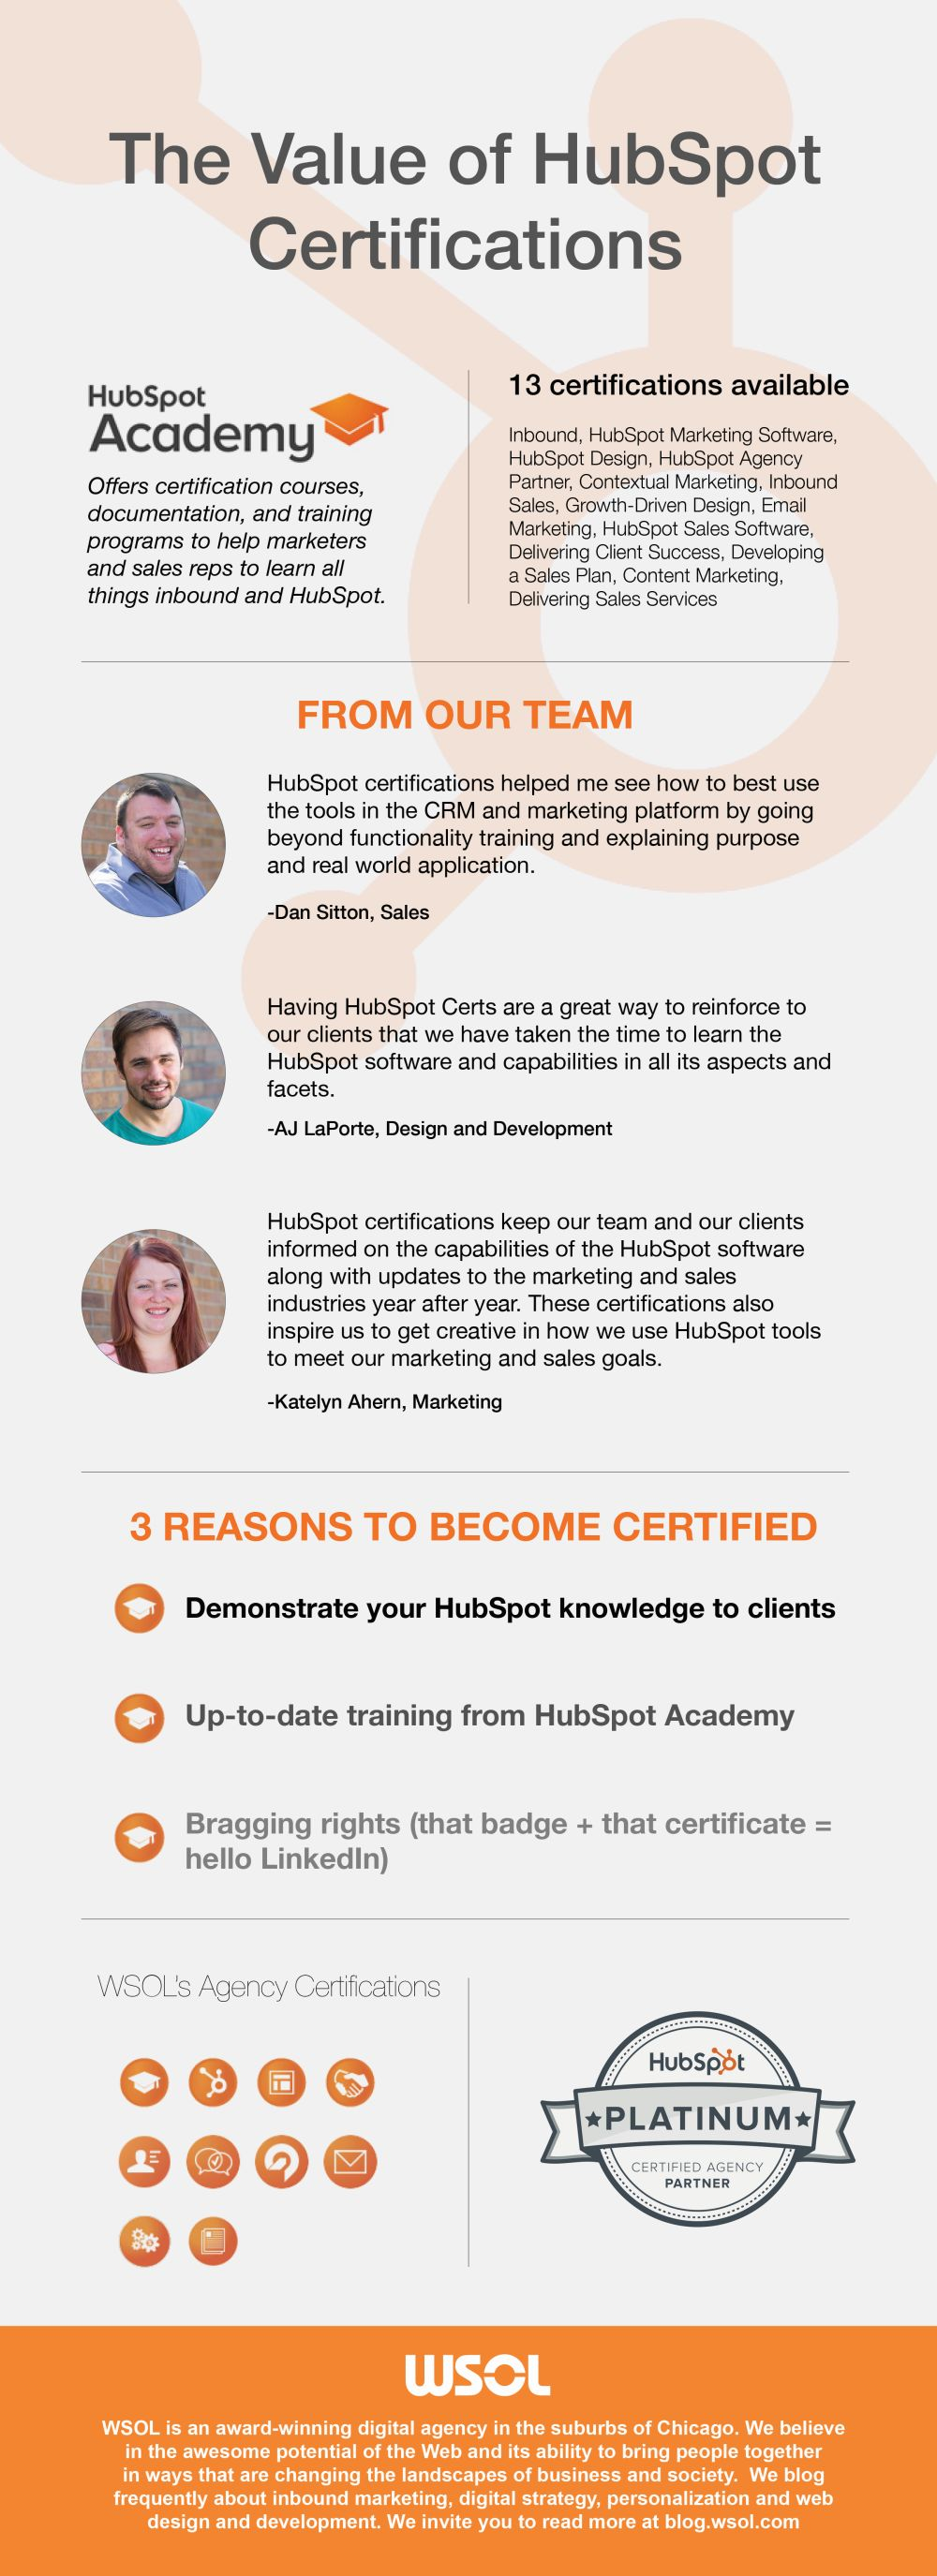 The Value of HubSpot Certifications